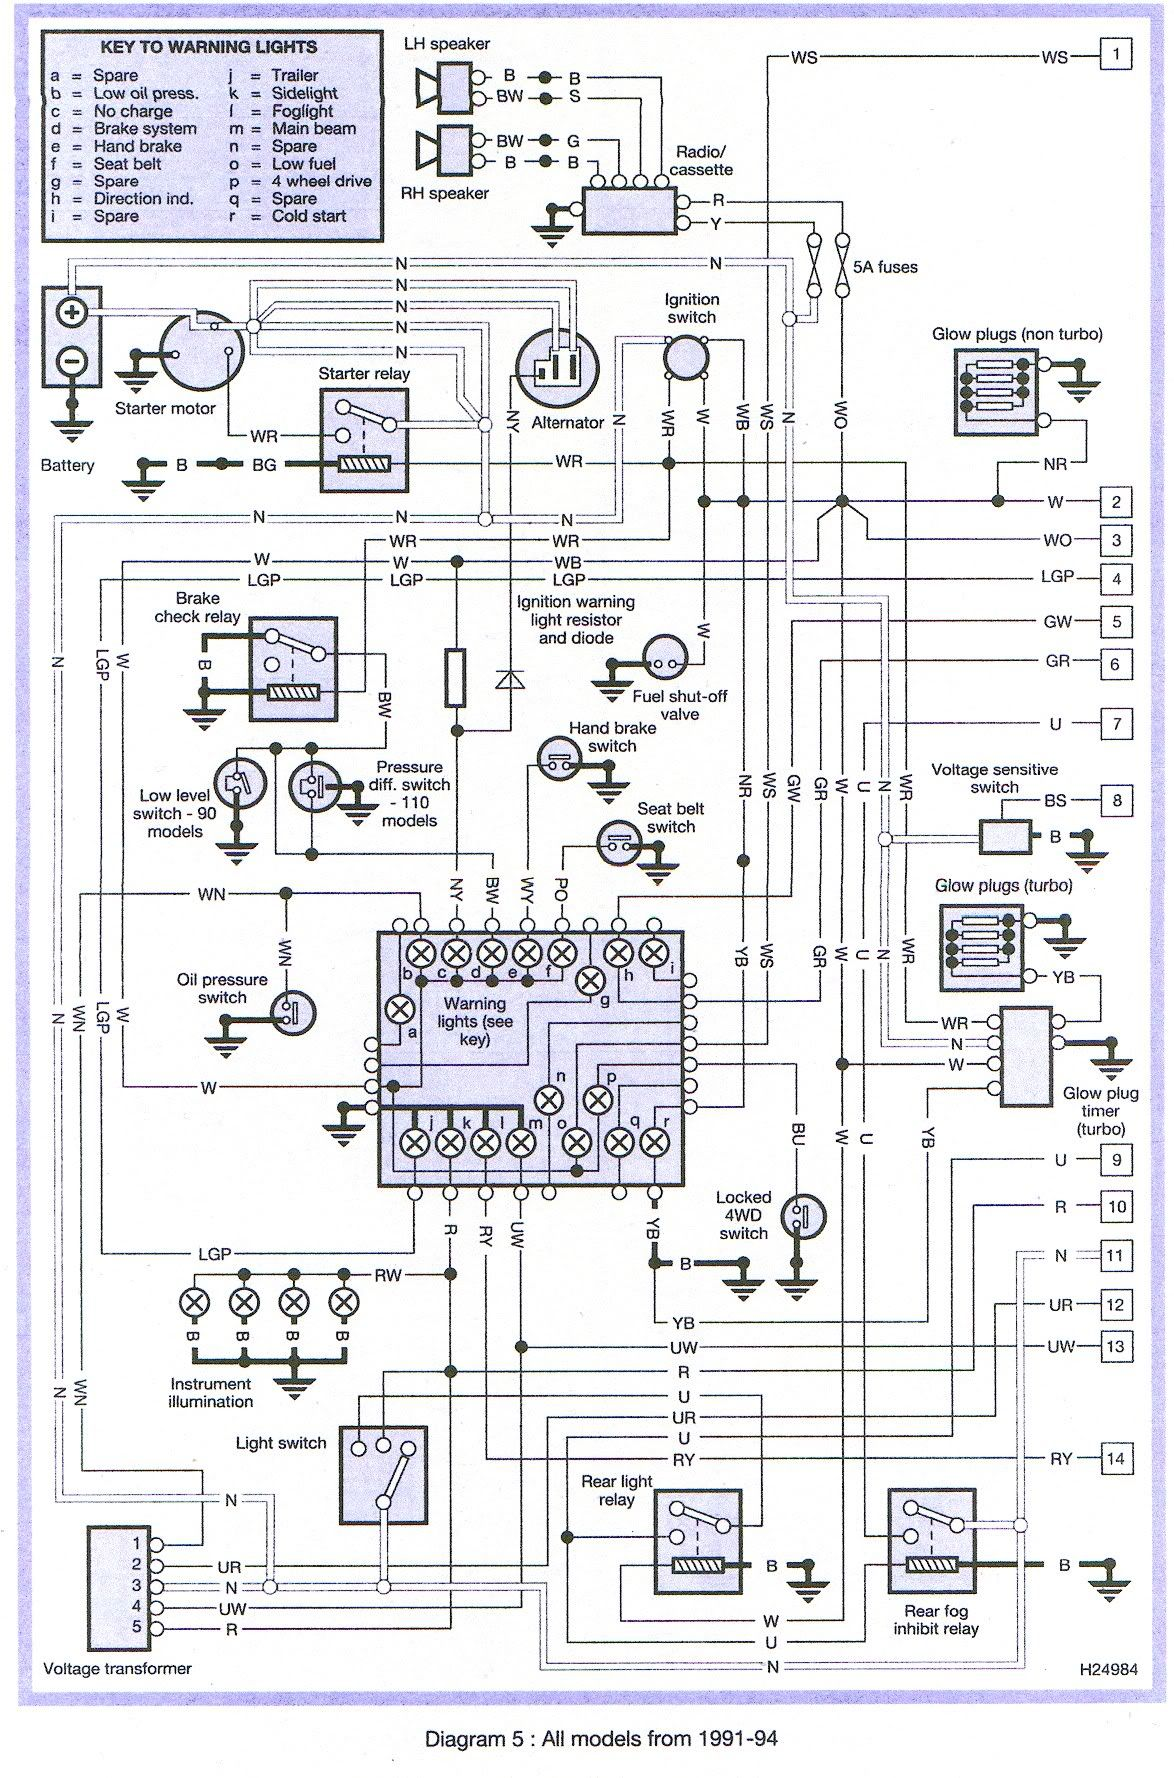 07629544bfff38ad2881b2c21312c6e6 land rover discovery wiring diagram manual repair with engine Land Rover Discovery 1 at panicattacktreatment.co